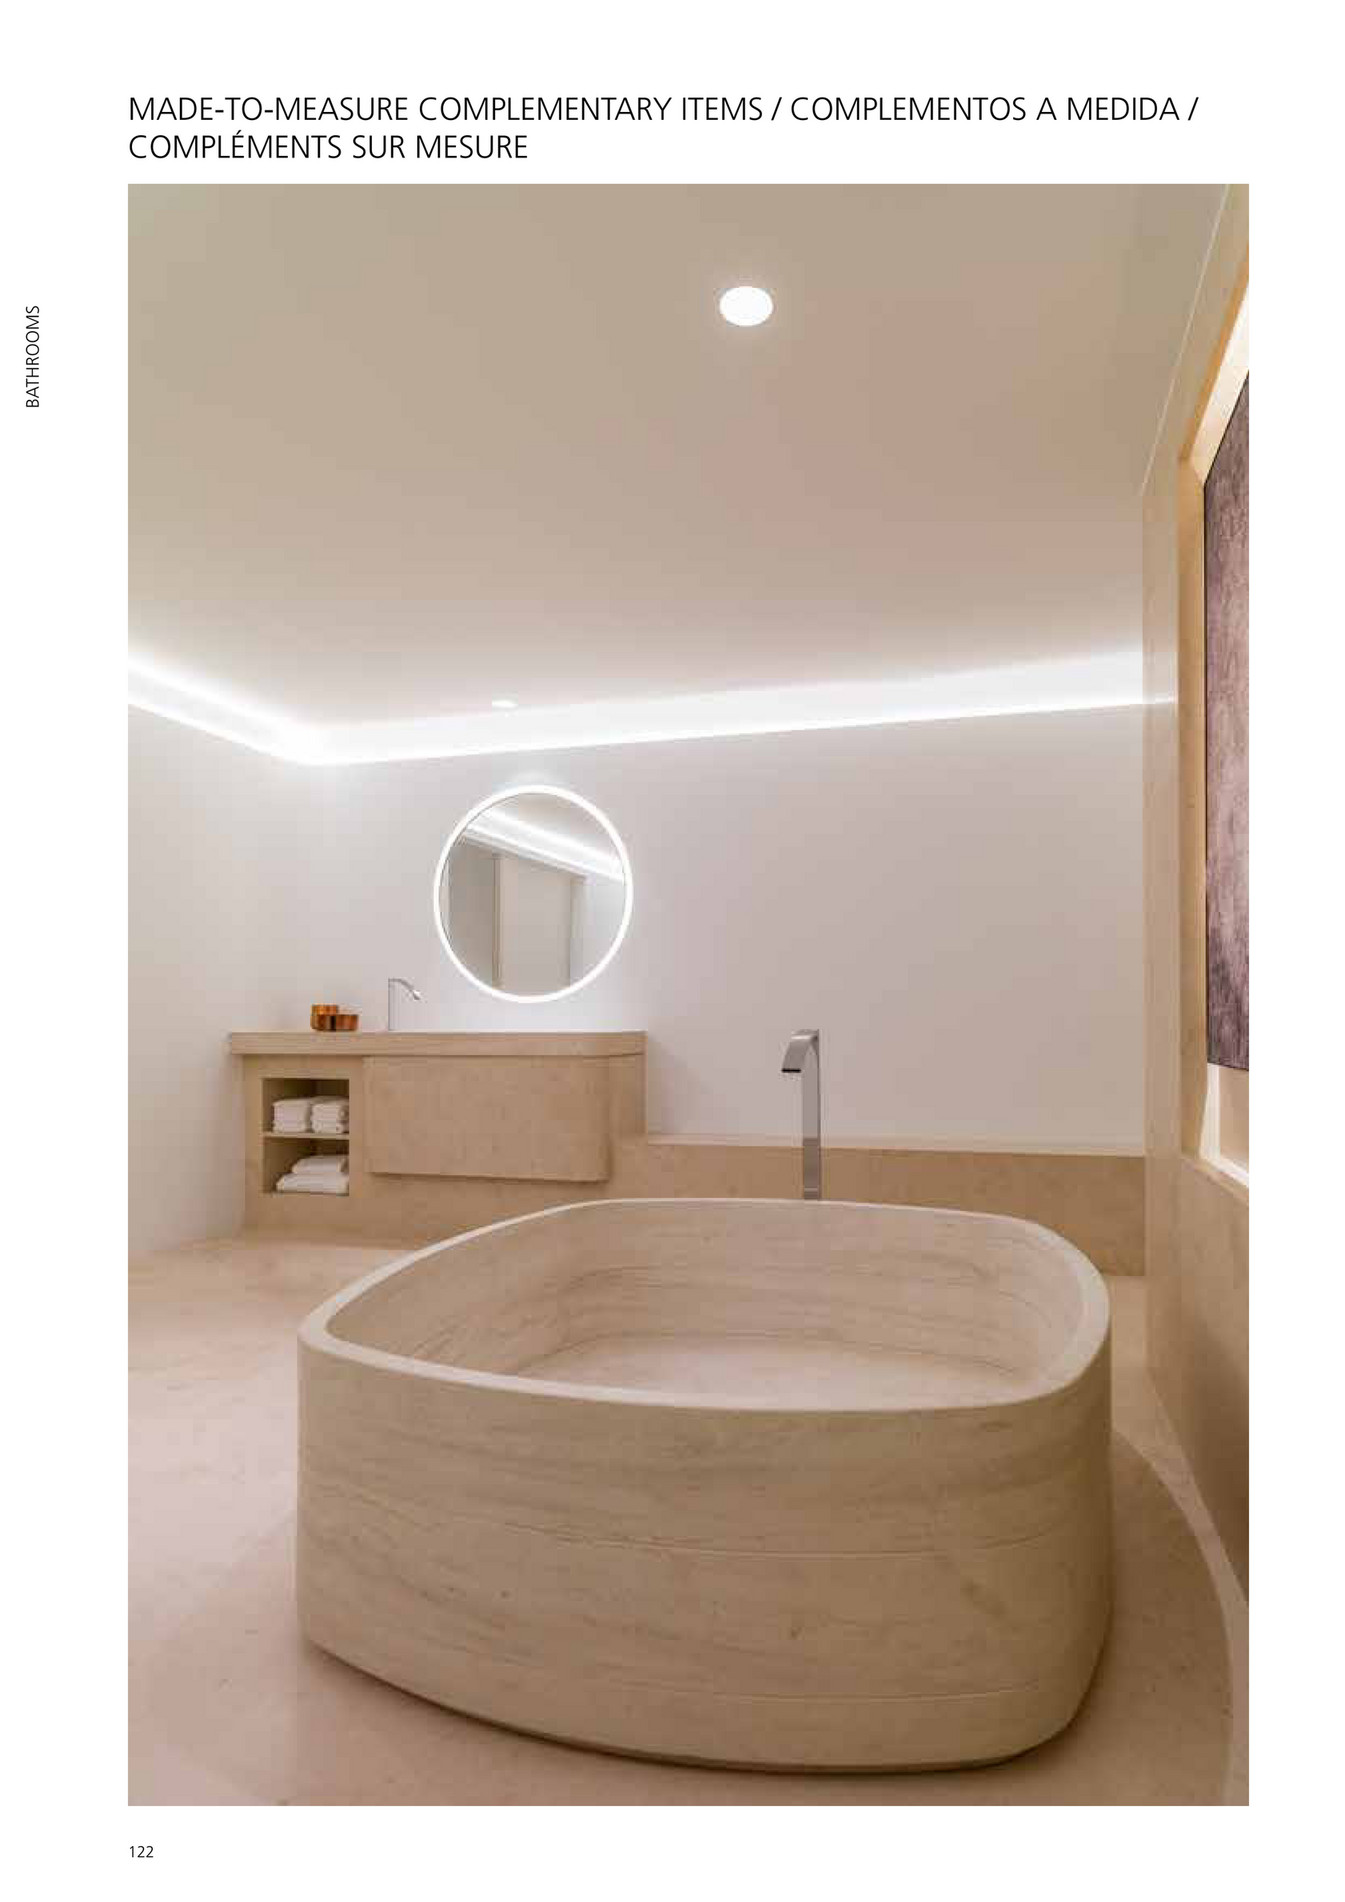 Jacuzzi Interior Medidas.Getblizznow Natural Products 2016 Page 124 125 Created